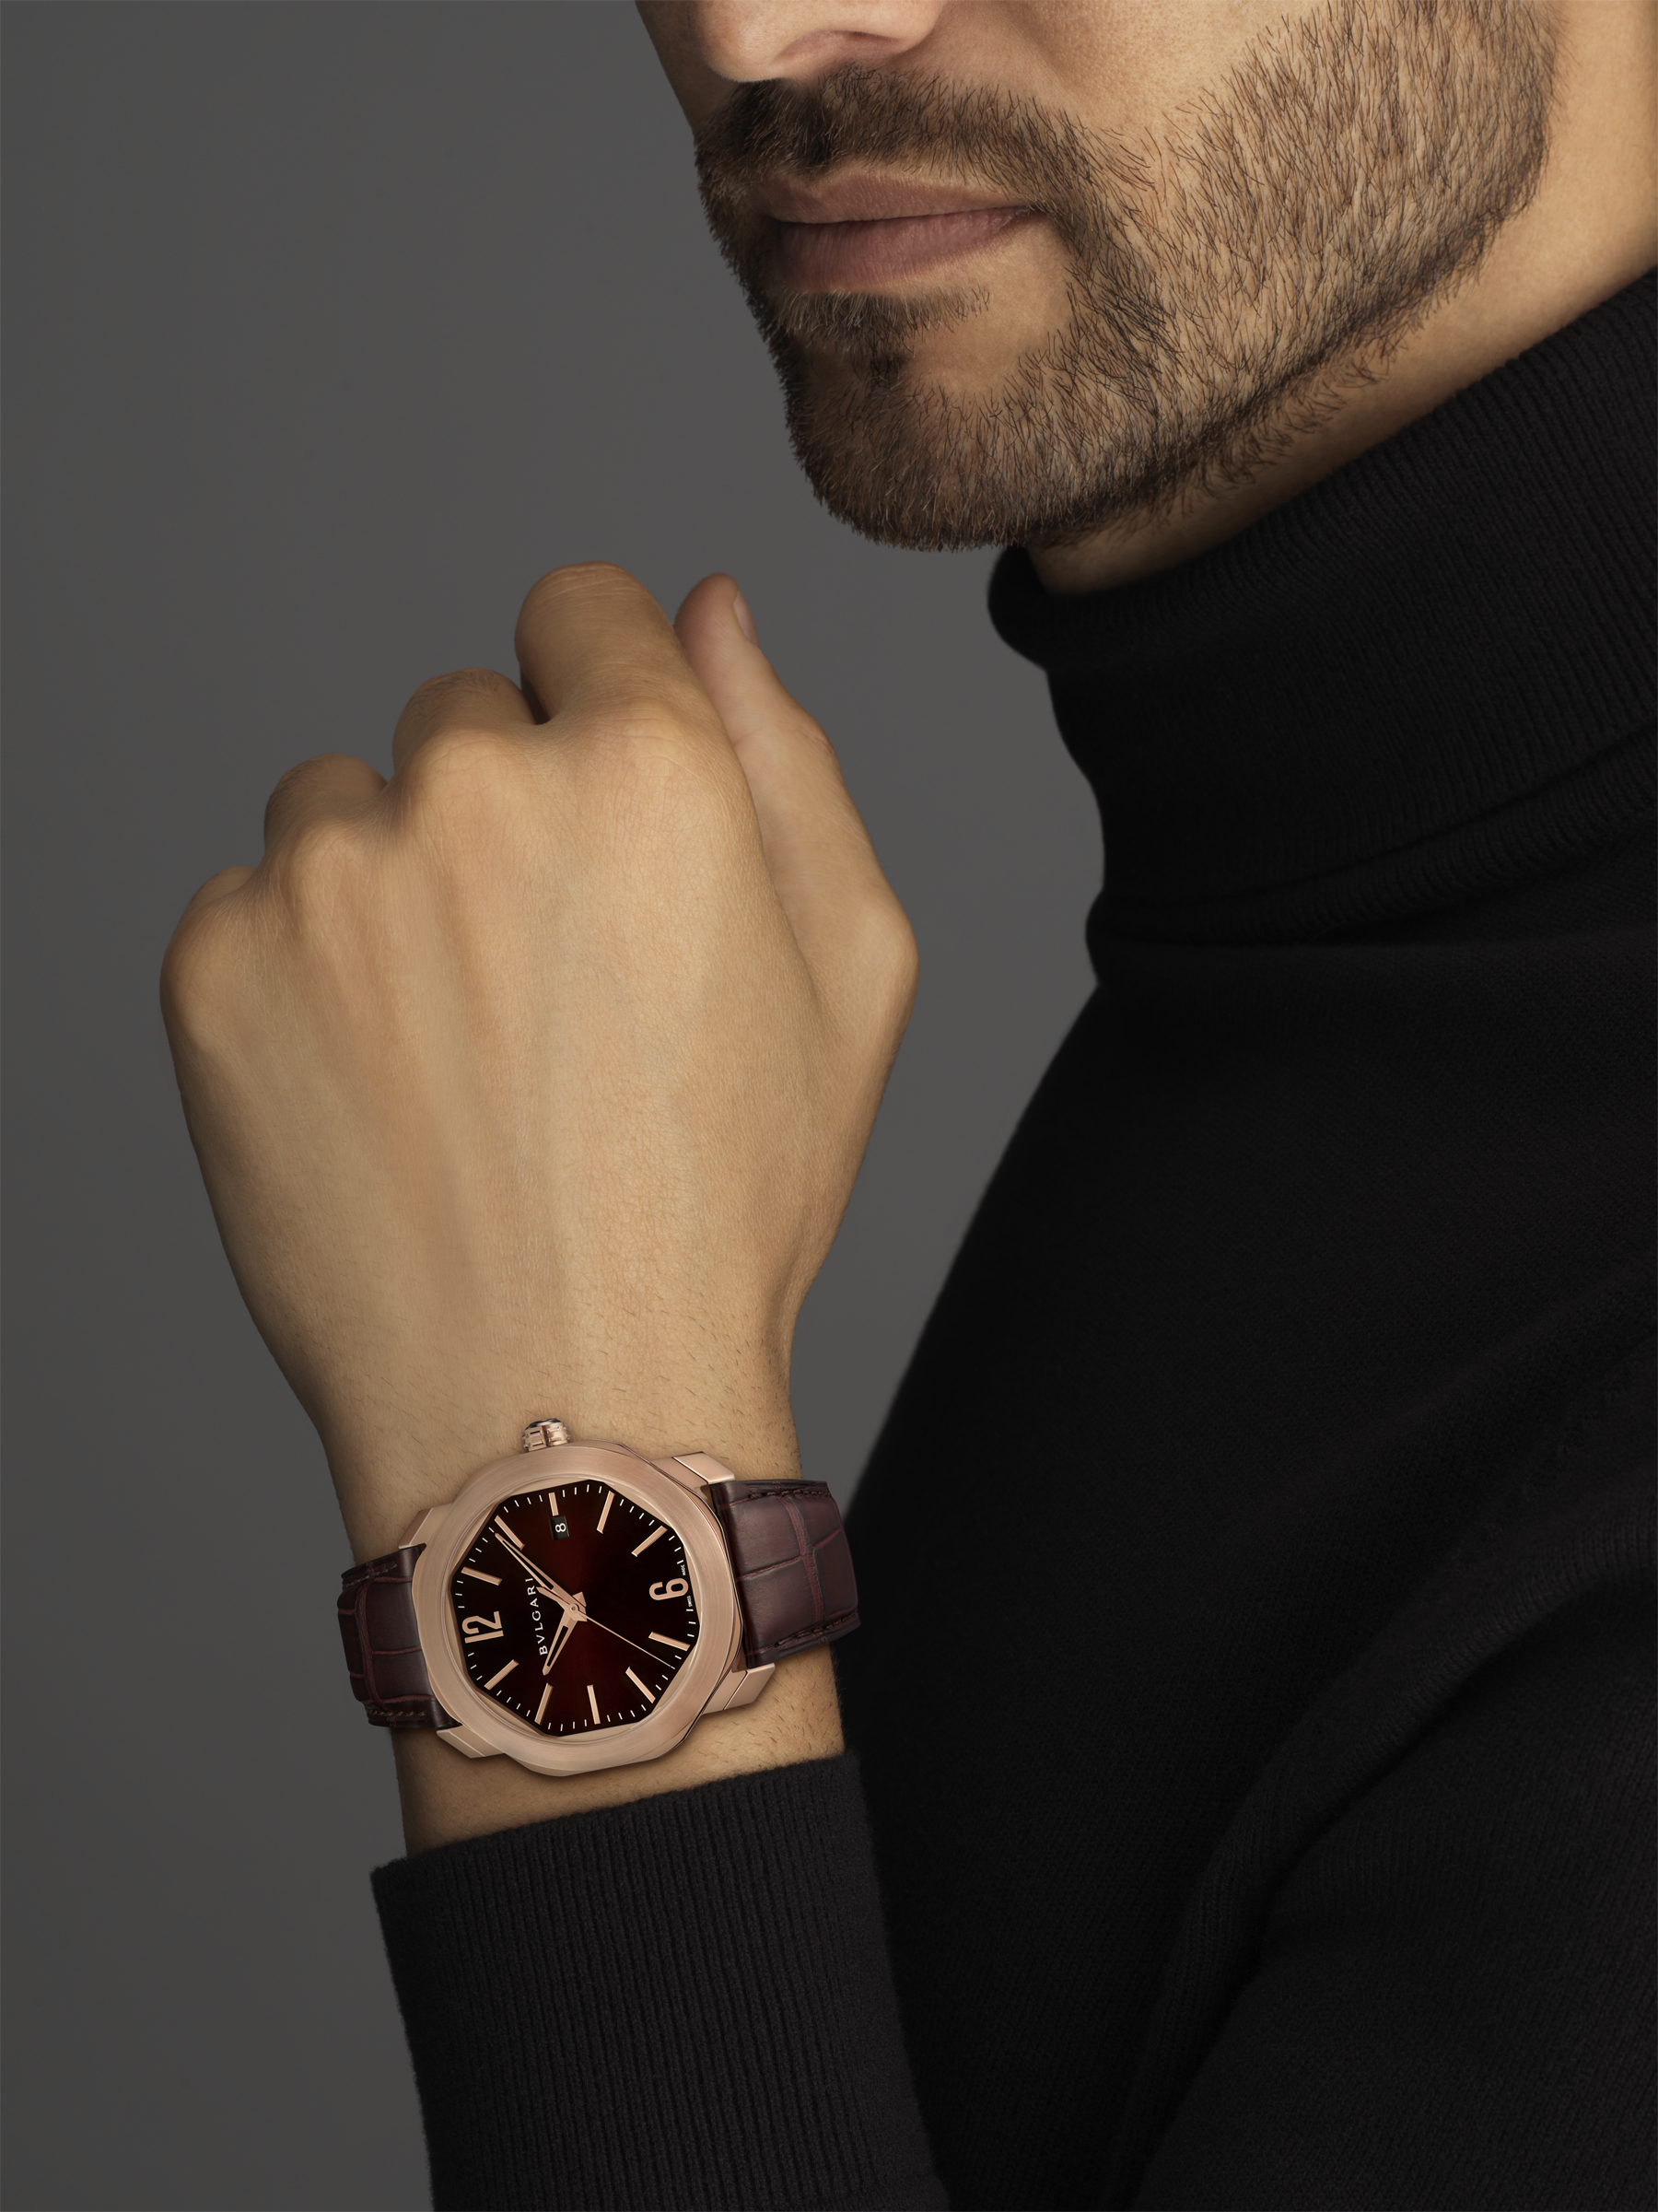 Octo Roma watch with mechanical manufacture movement, automatic winding, 18 kt rose gold case, dark brown lacquered dial and brown alligator bracelet. 102702 image 5